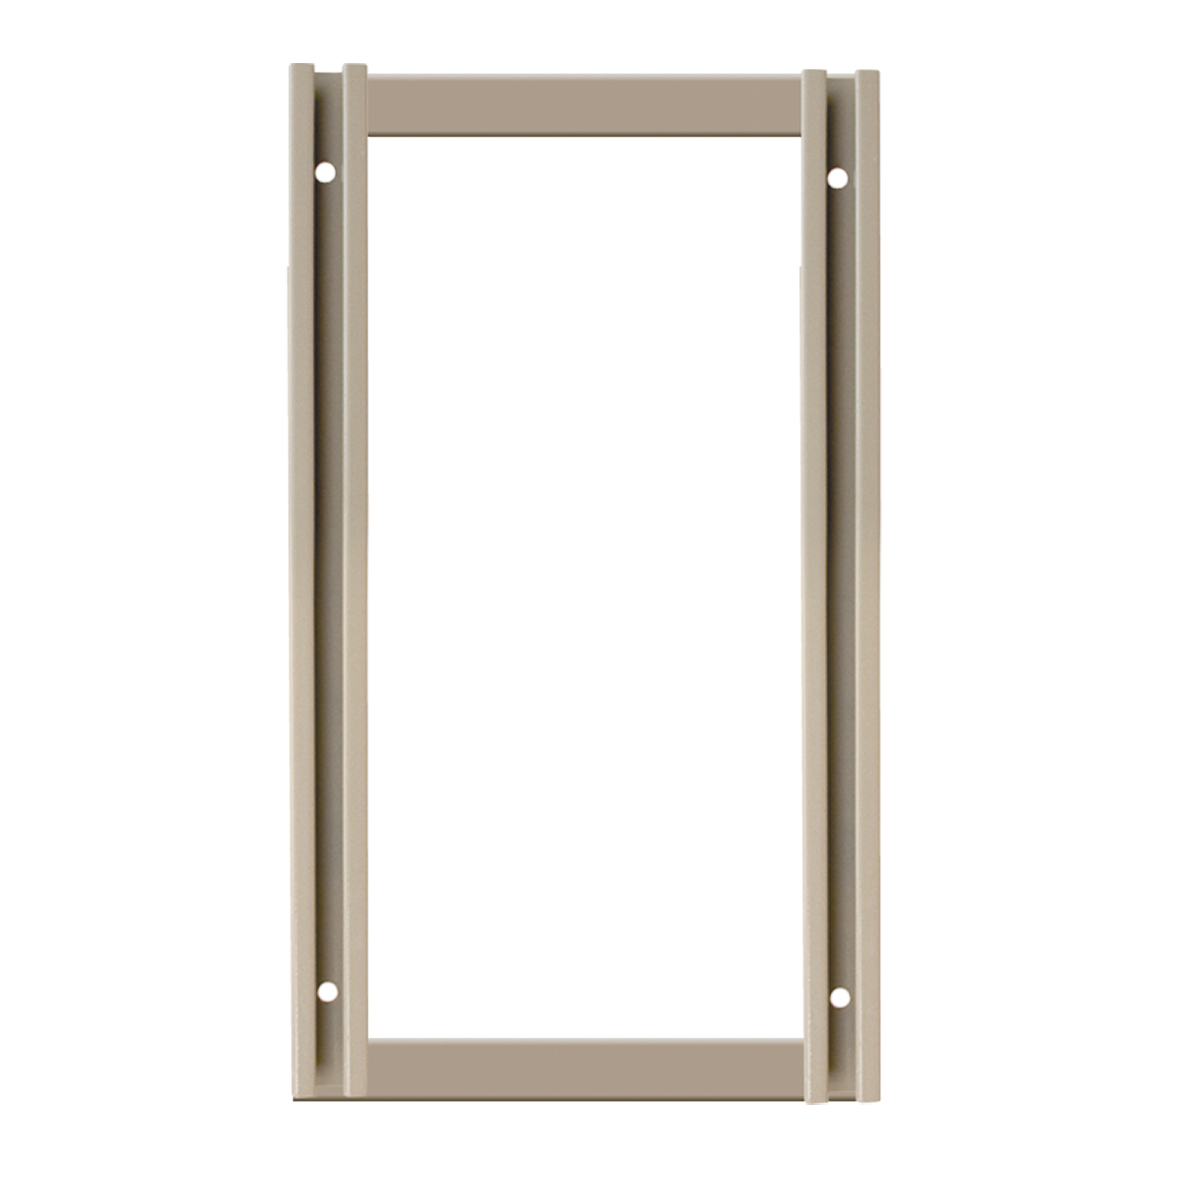 TiltView Frame, 24 x 13-1/4, Beige (TV24F).  This item sold in carton quantities of 1.